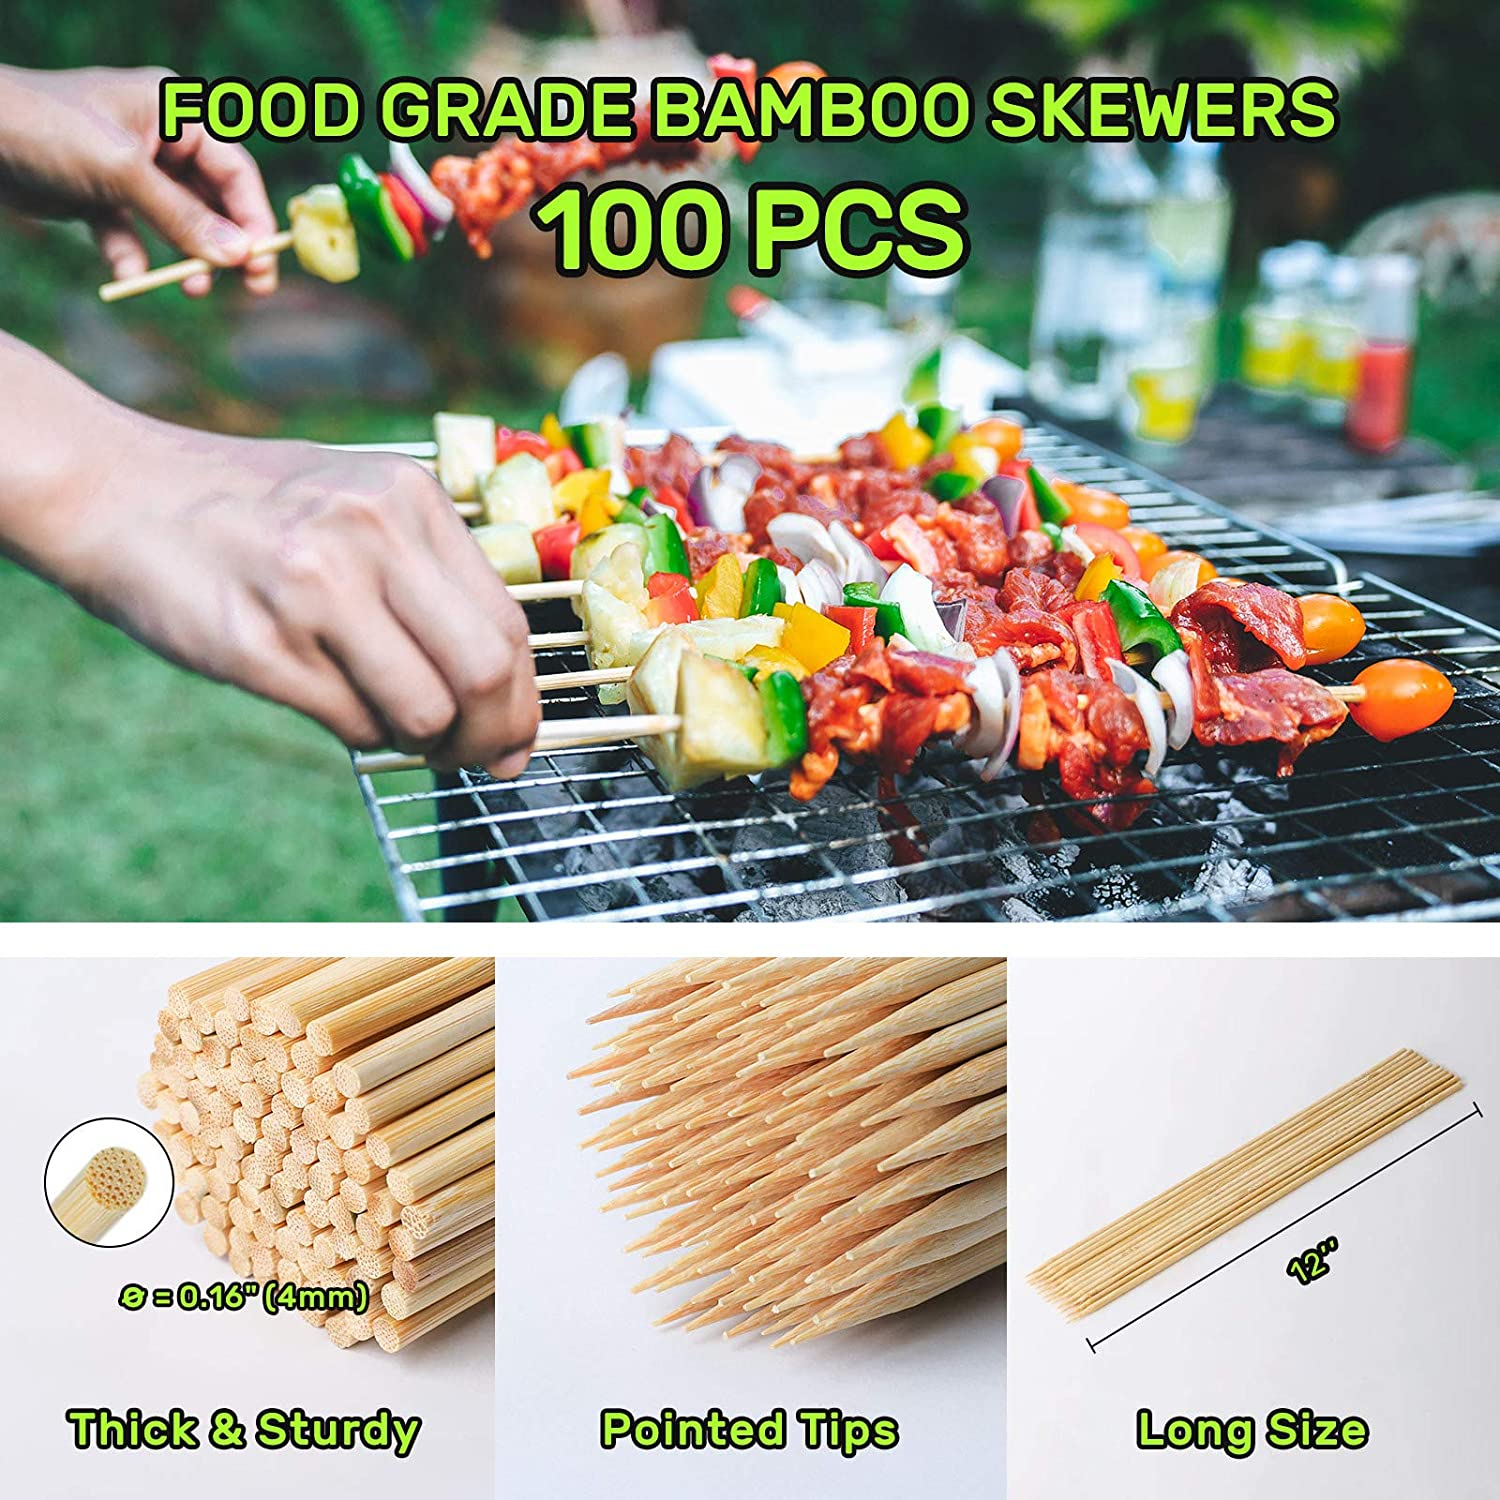 Stainless Steel BBQ Tools Set for Men /& Women Grilling Utensils Accessories with Storage Apron Gift Kit for Barbecue Indoor Outdoor Veken BBQ Grill Accessories